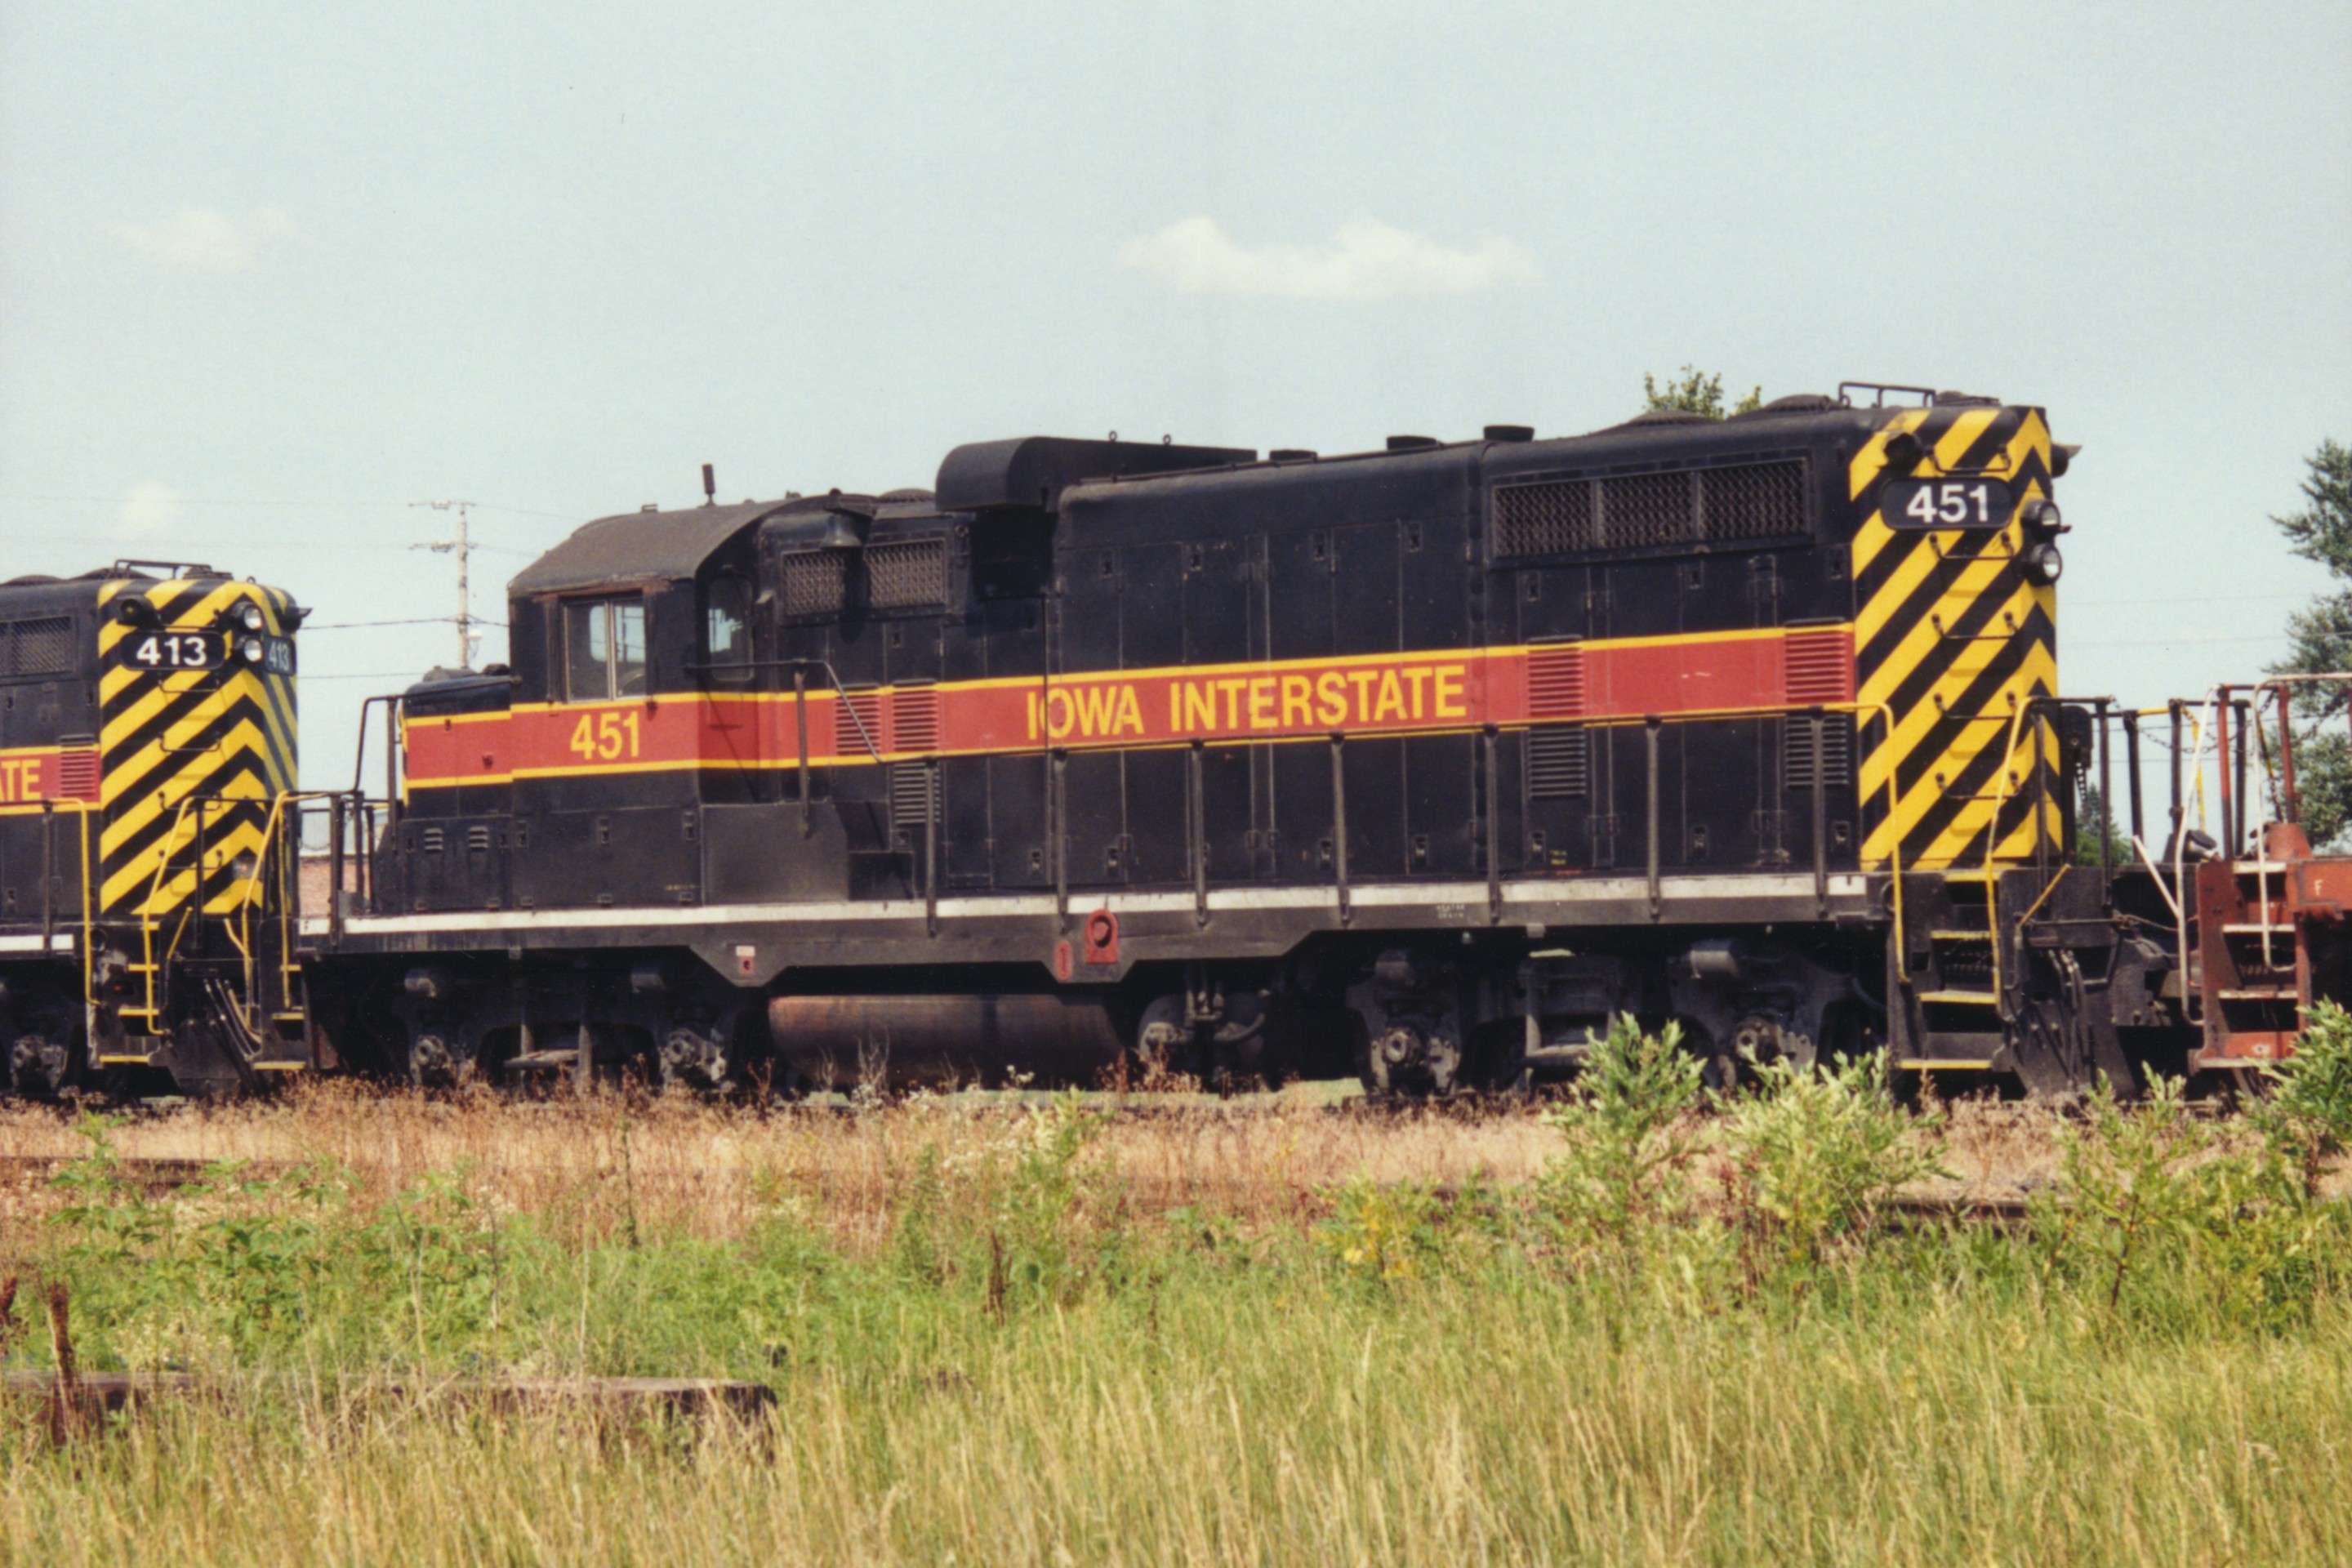 IAIS 451 at Altoona, IA on 28-Jul-1994